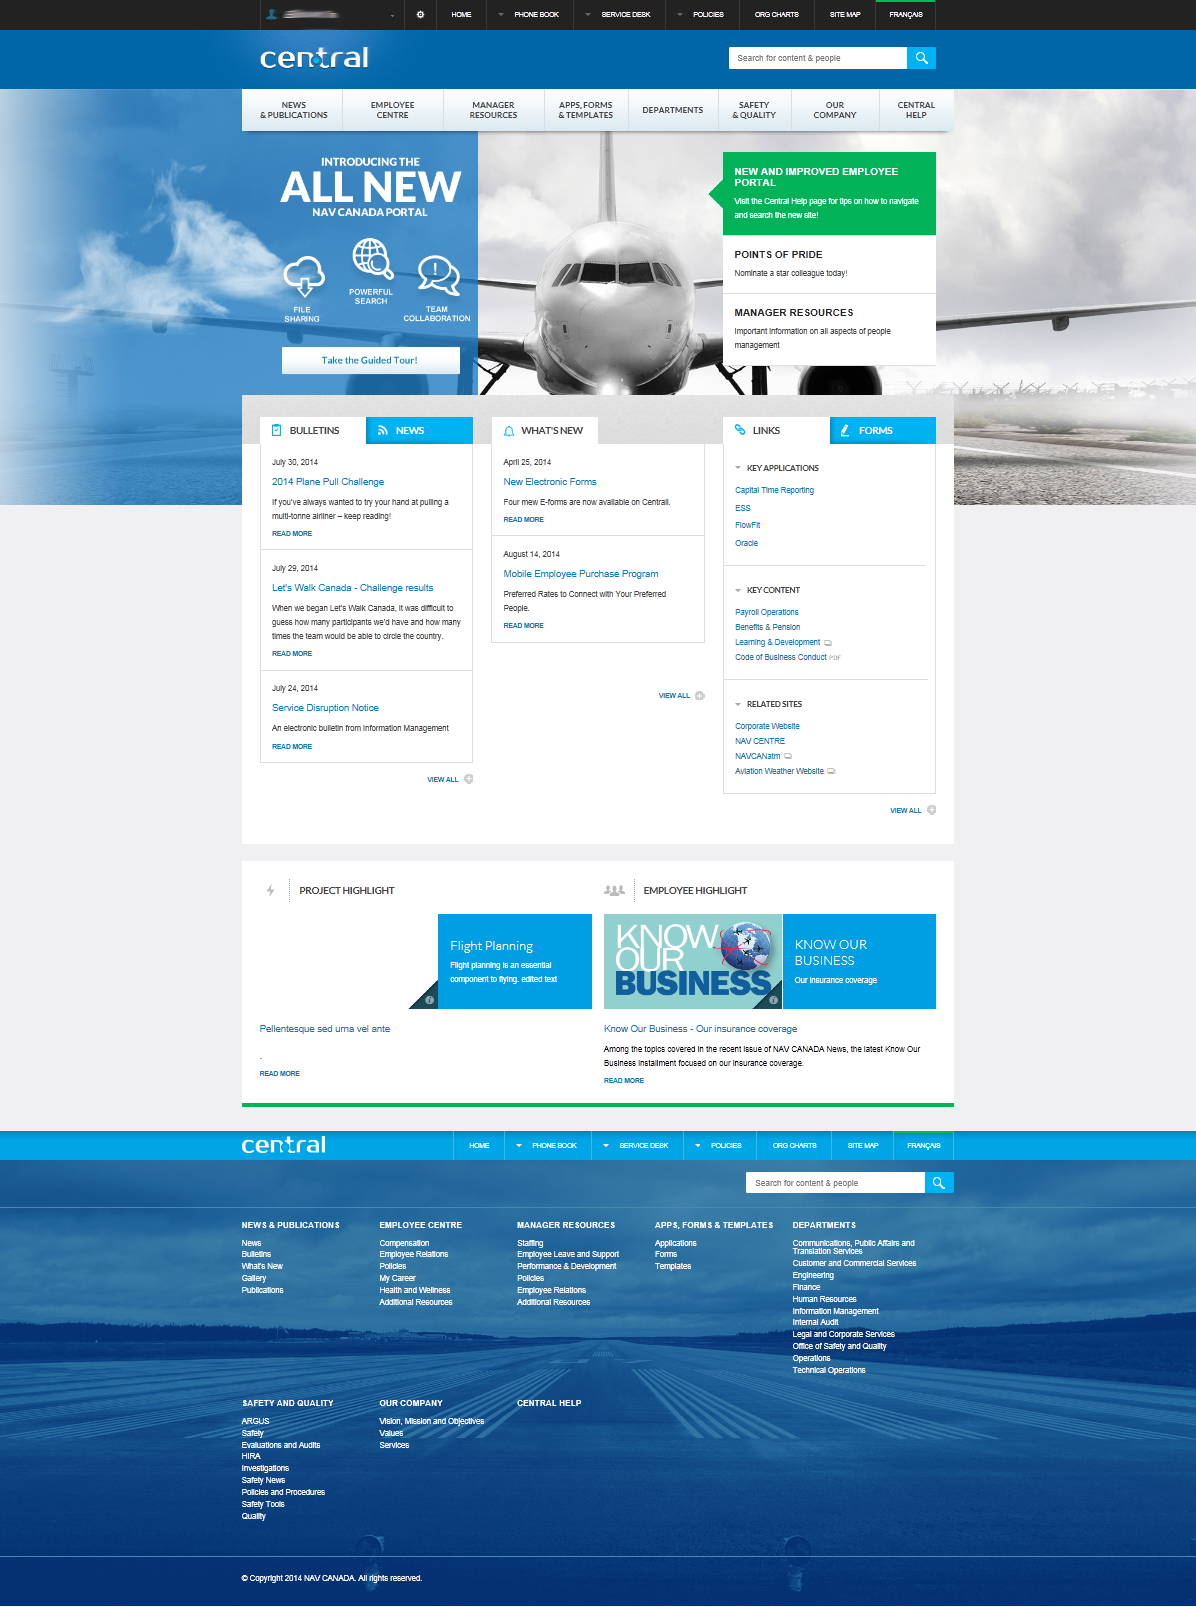 nav canadas delightful intranet is based on sharepoint 2013 above is the homepage the - Sharepoint Design Ideas